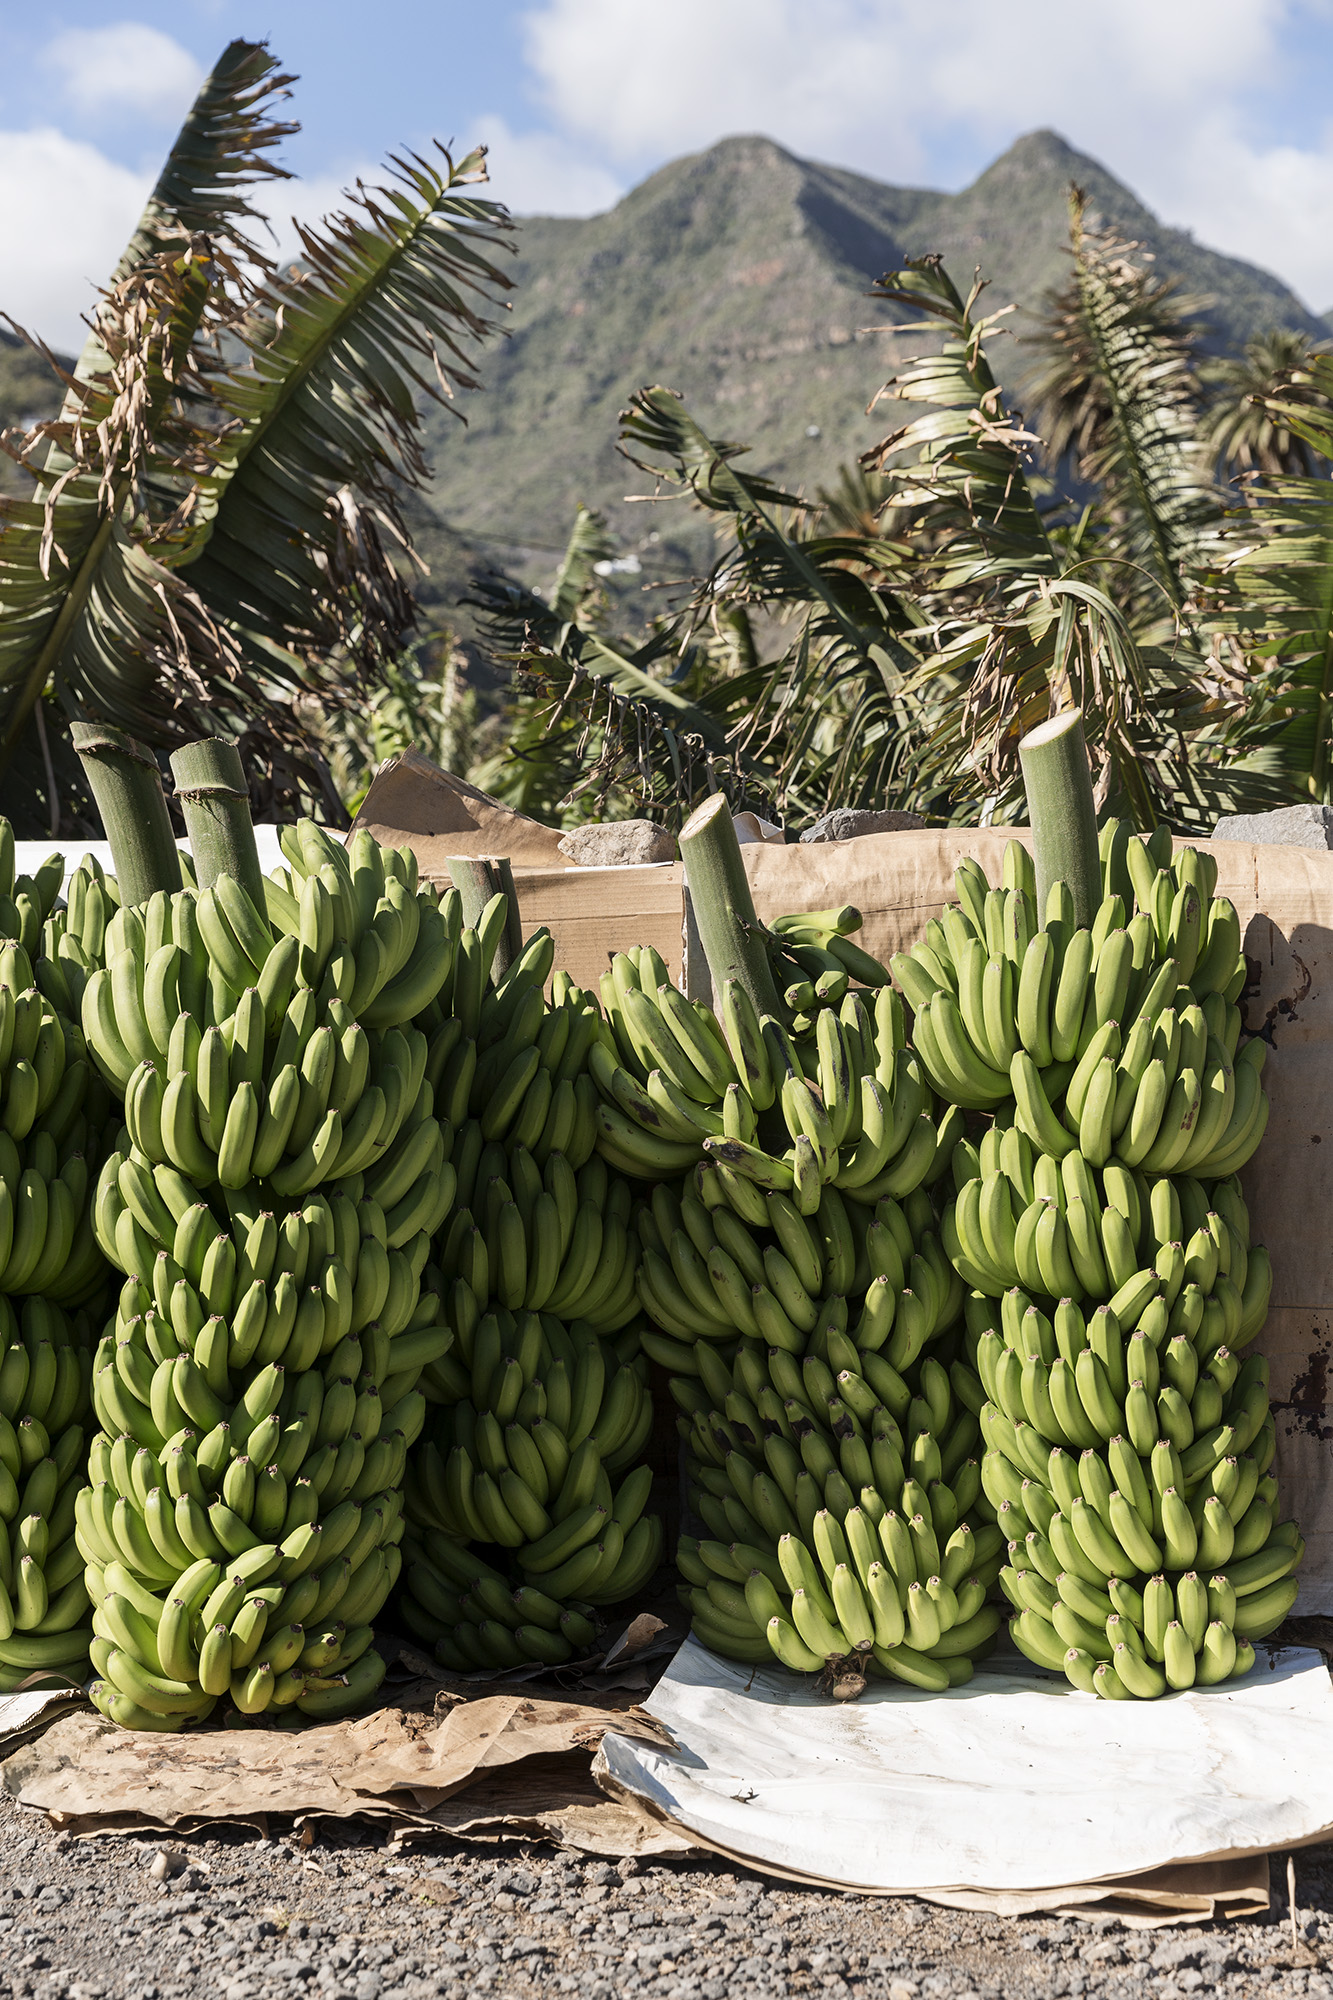 Banana in La Gomera in the Canary Islands by Rebecca Stumpf, Colorado Lifestyle Travel Food Editorial and Commercial Photographer